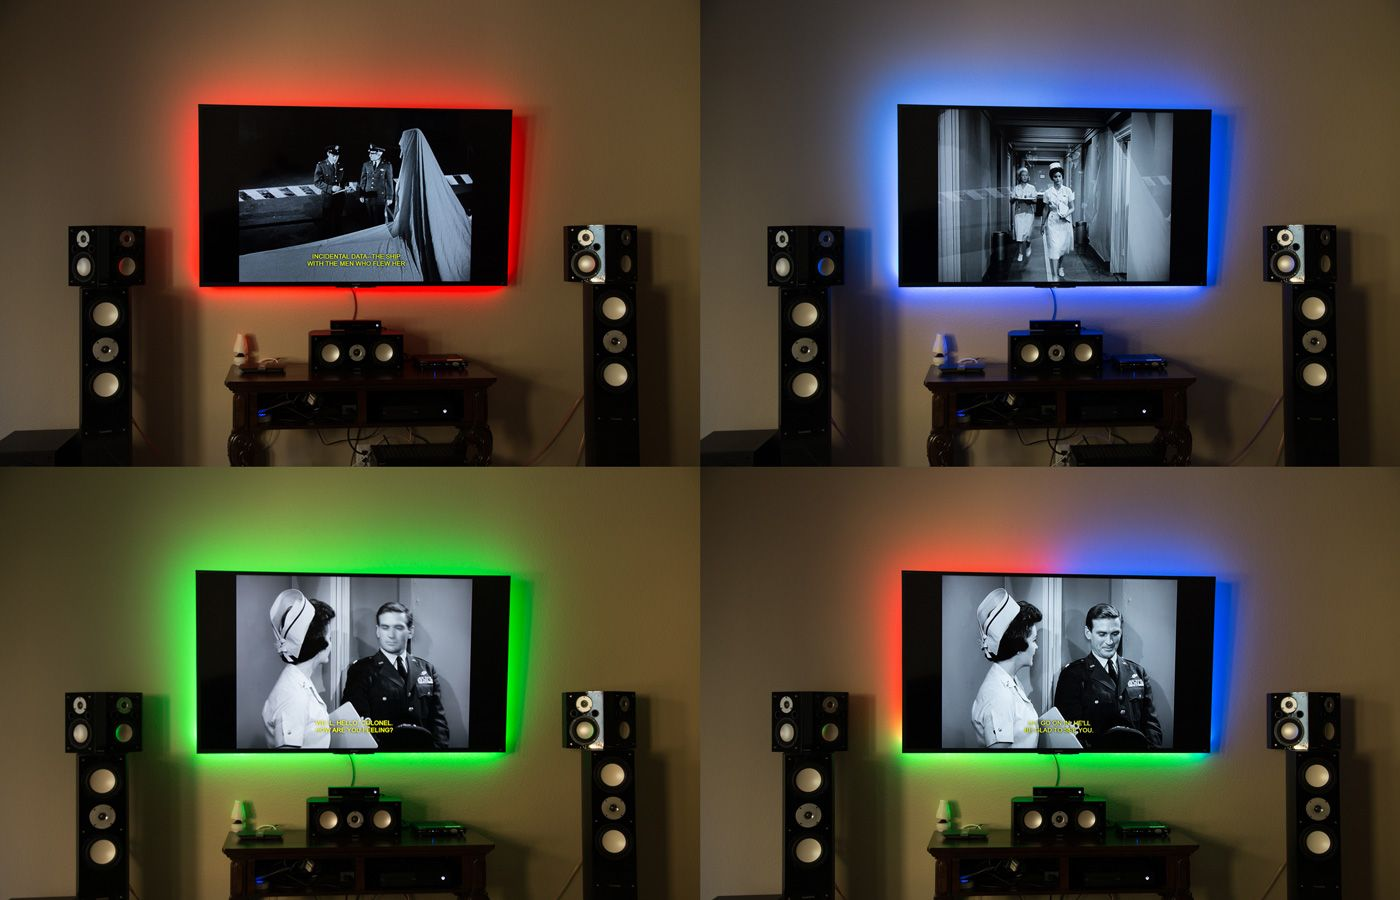 Phillips Hue Behind Tv Avs Home Theater Discussions And Reviews Phillips Hue Phillips Hue Lighting Hue Lights